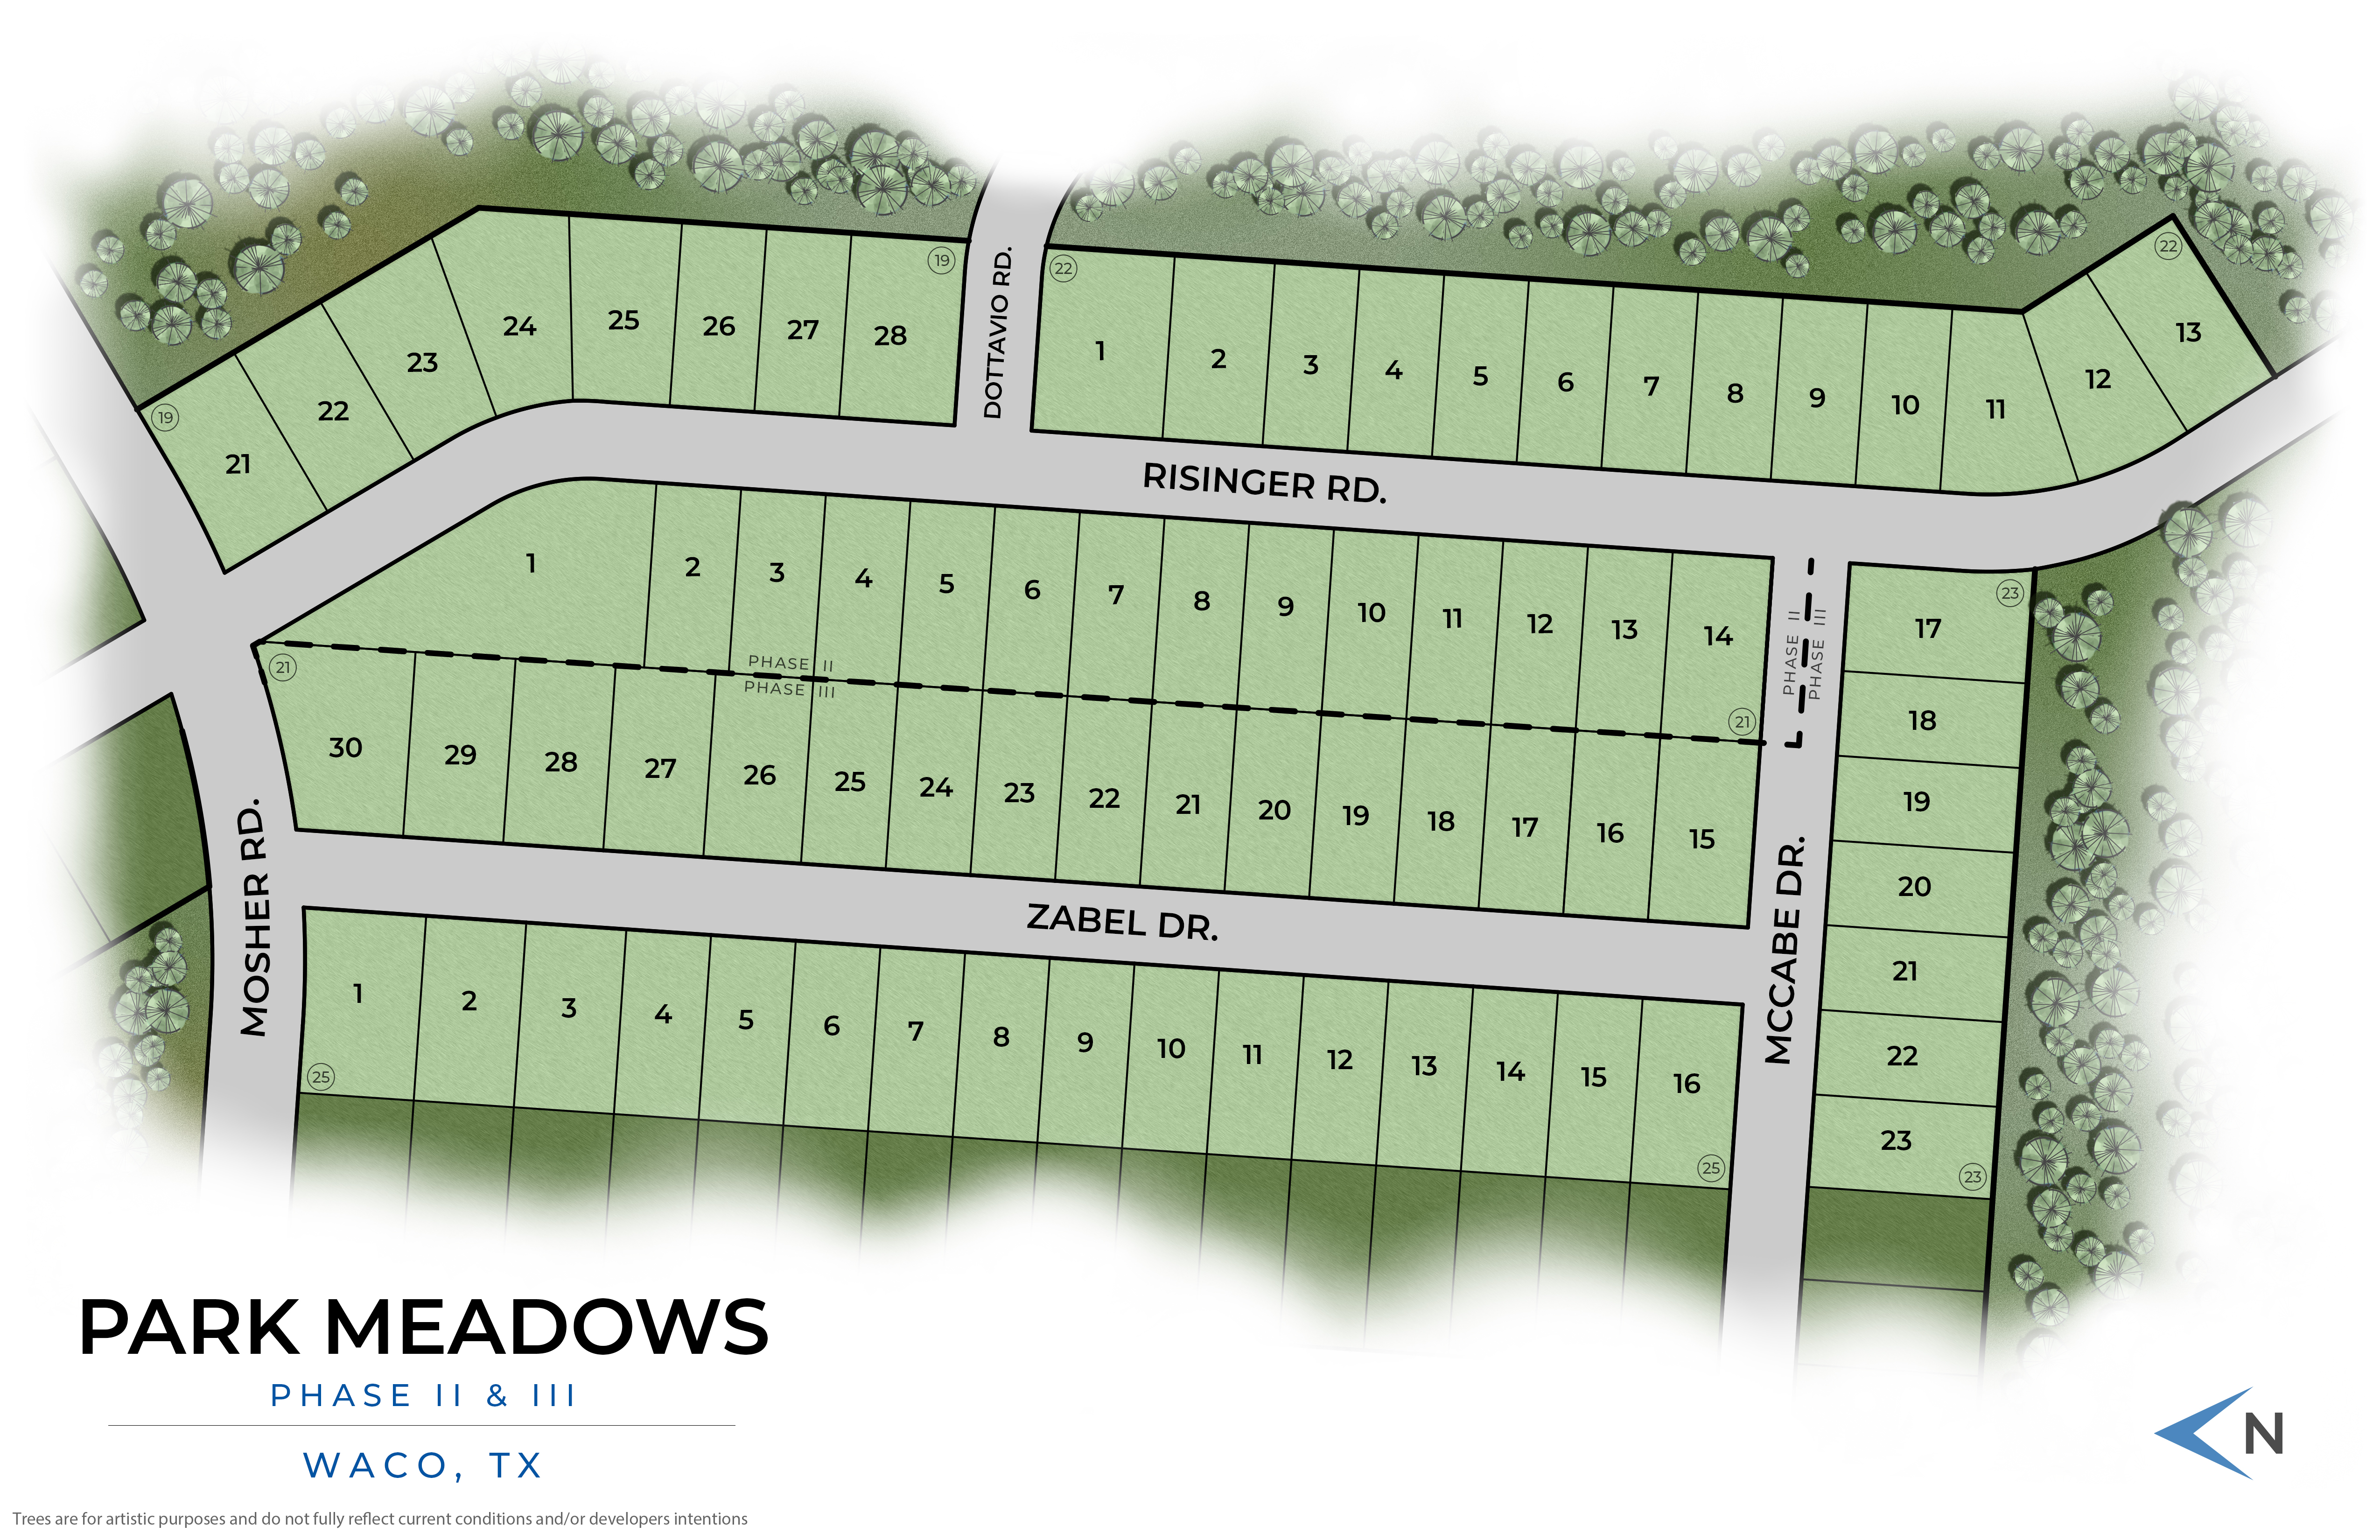 Waco, TX The Enclave at Park Meadows New Homes from Stylecraft Builders